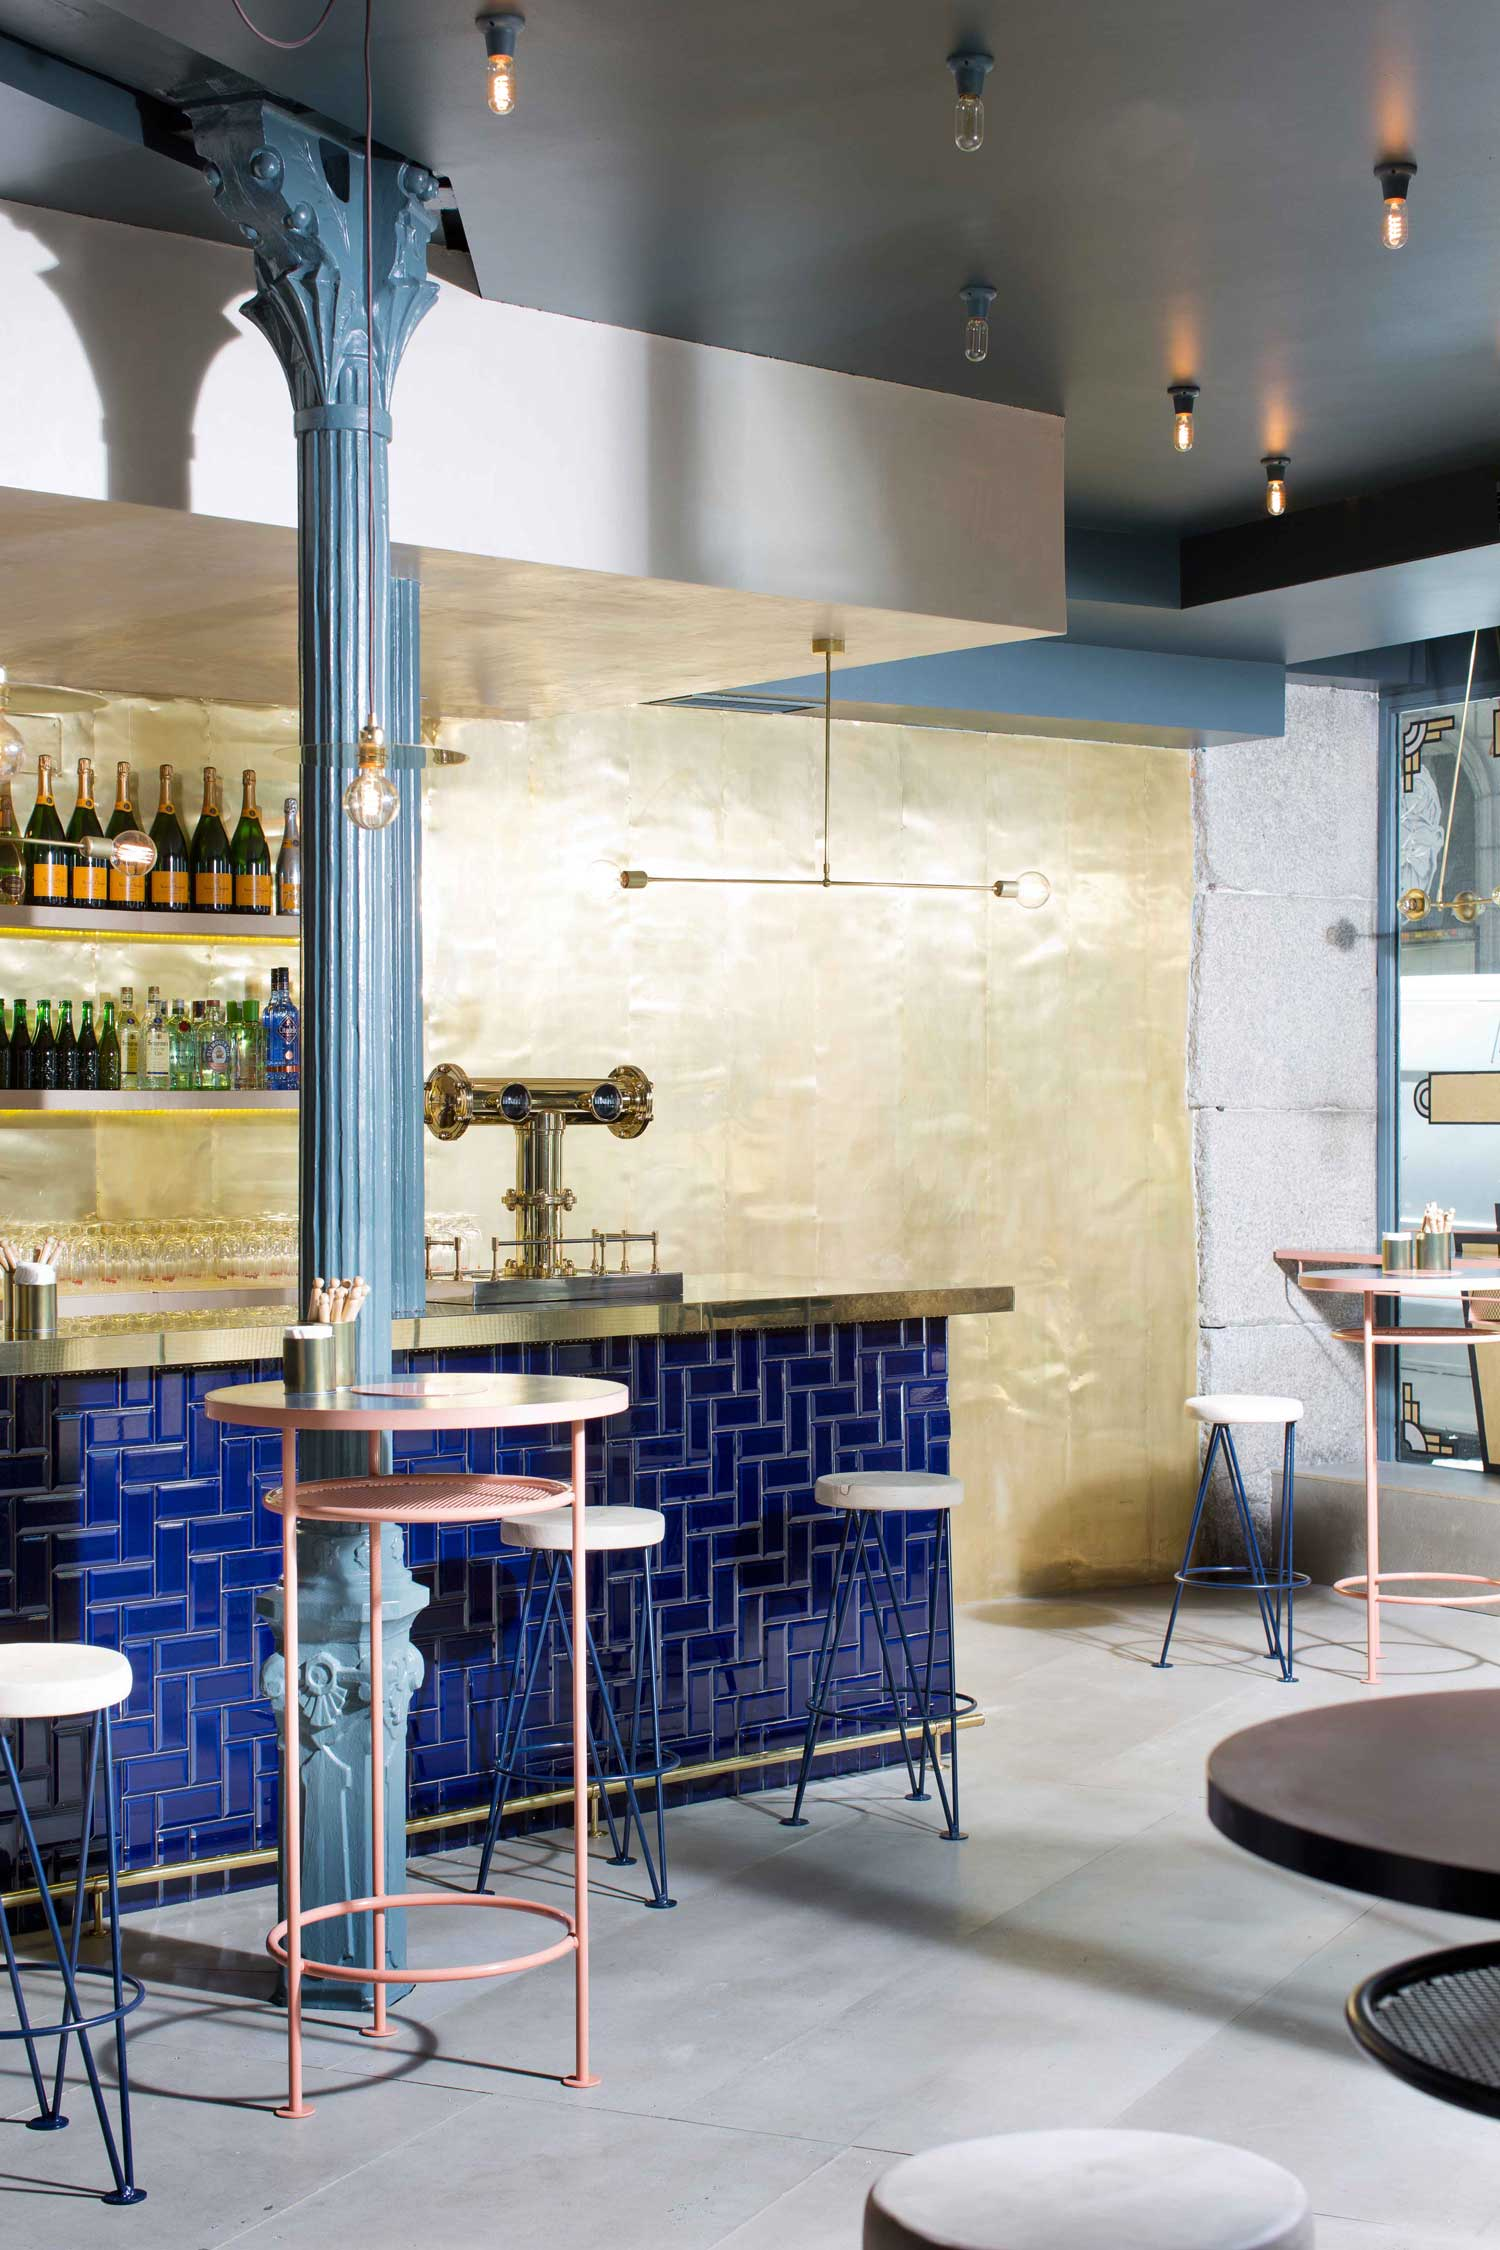 sandwich-champaign-bar-madrid-by-lucas-y-hernandez-gil-yellowtrace-04